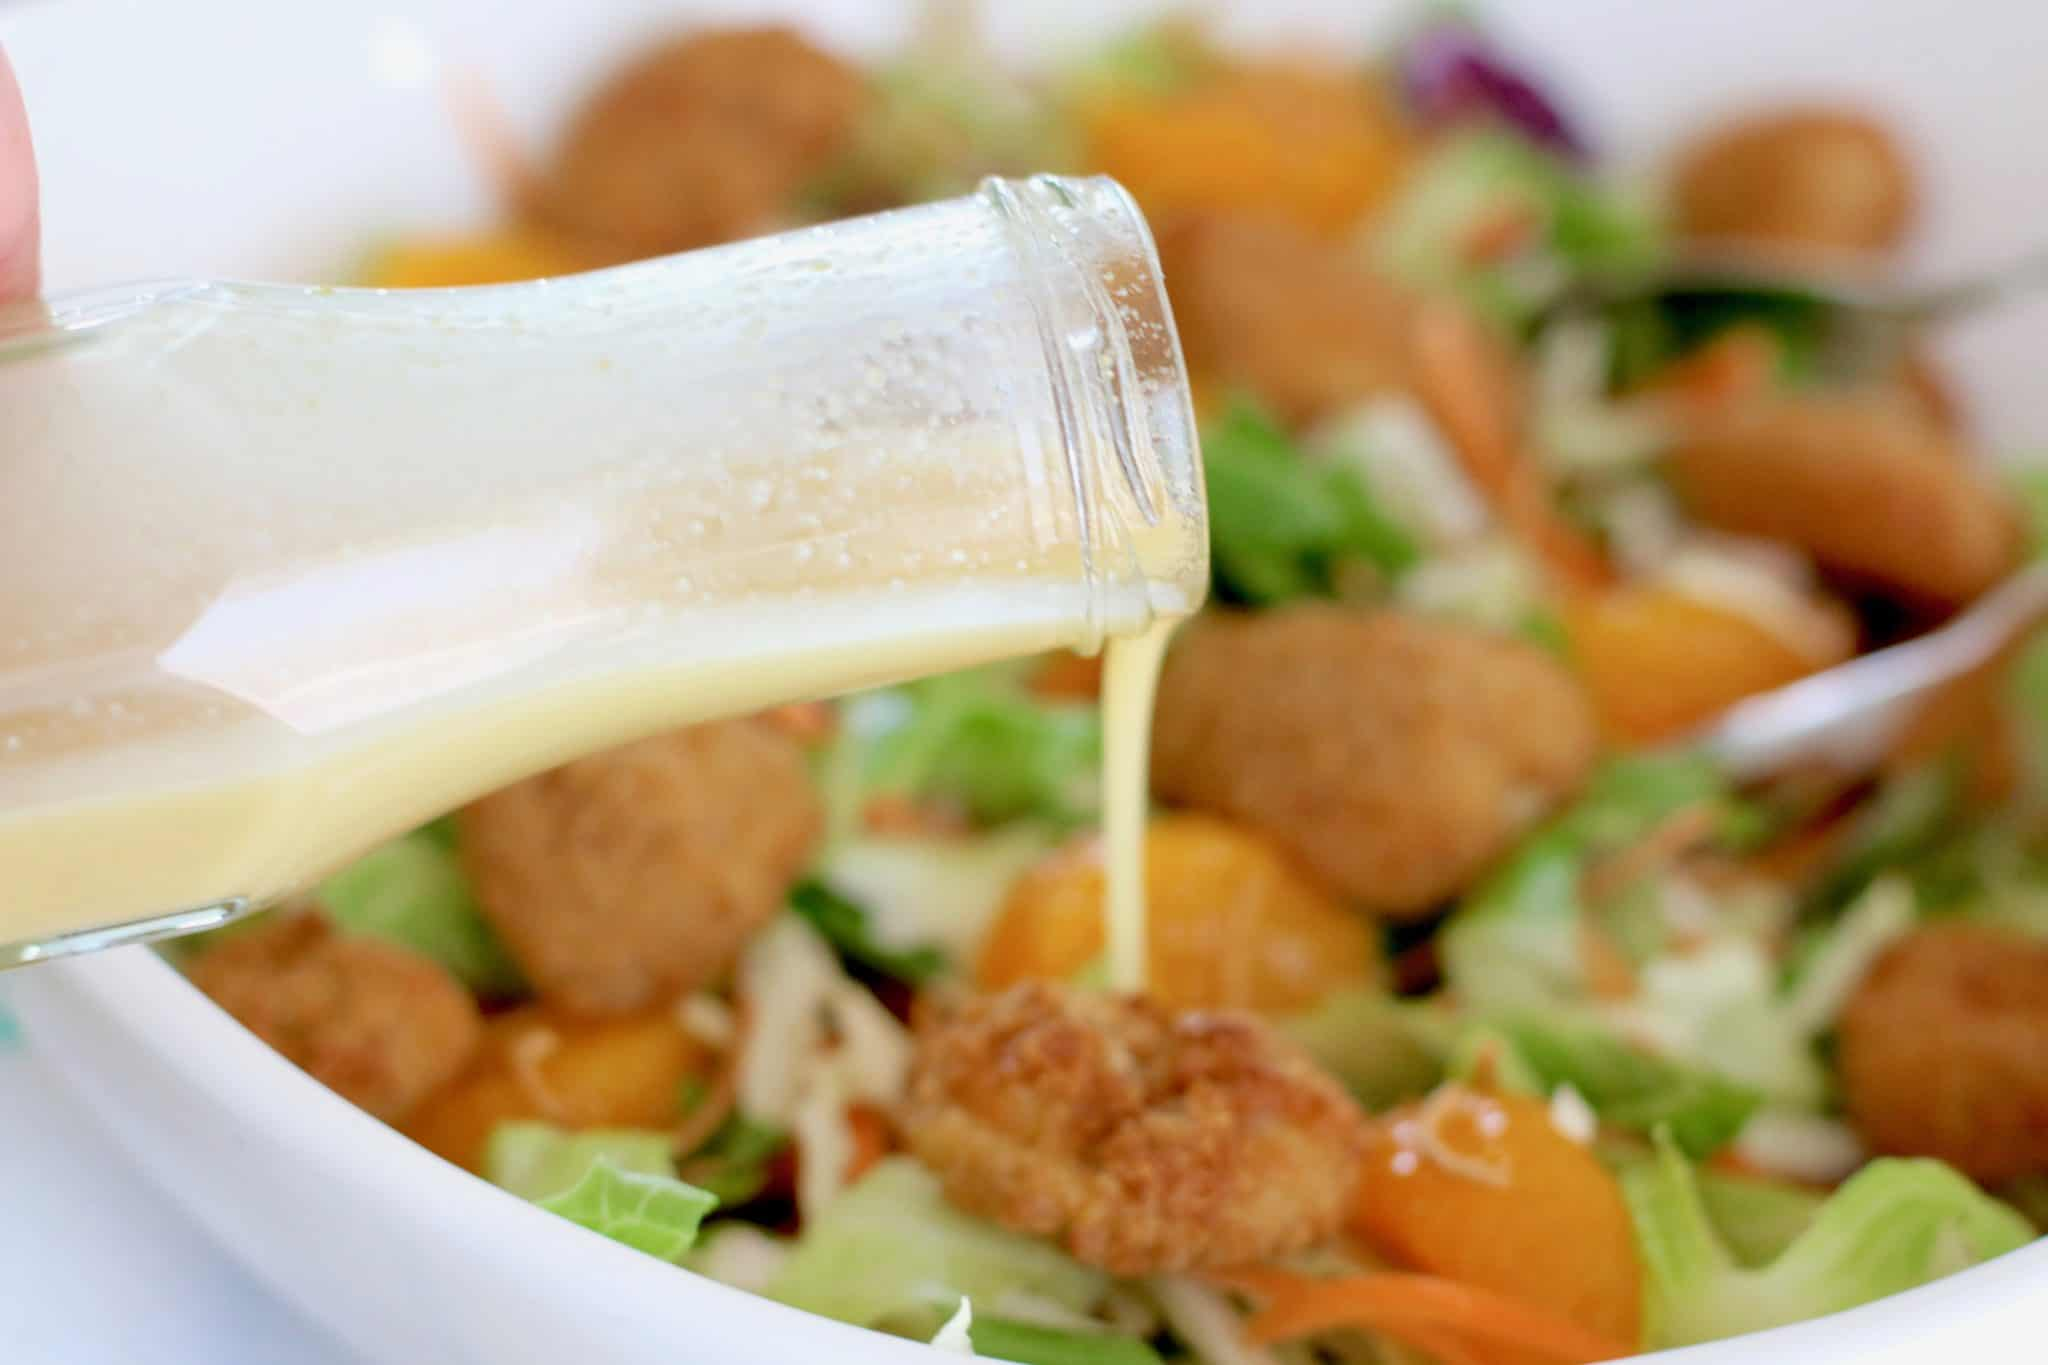 pouring homemade creamy sesame dressing poured on oriental chicken salad.